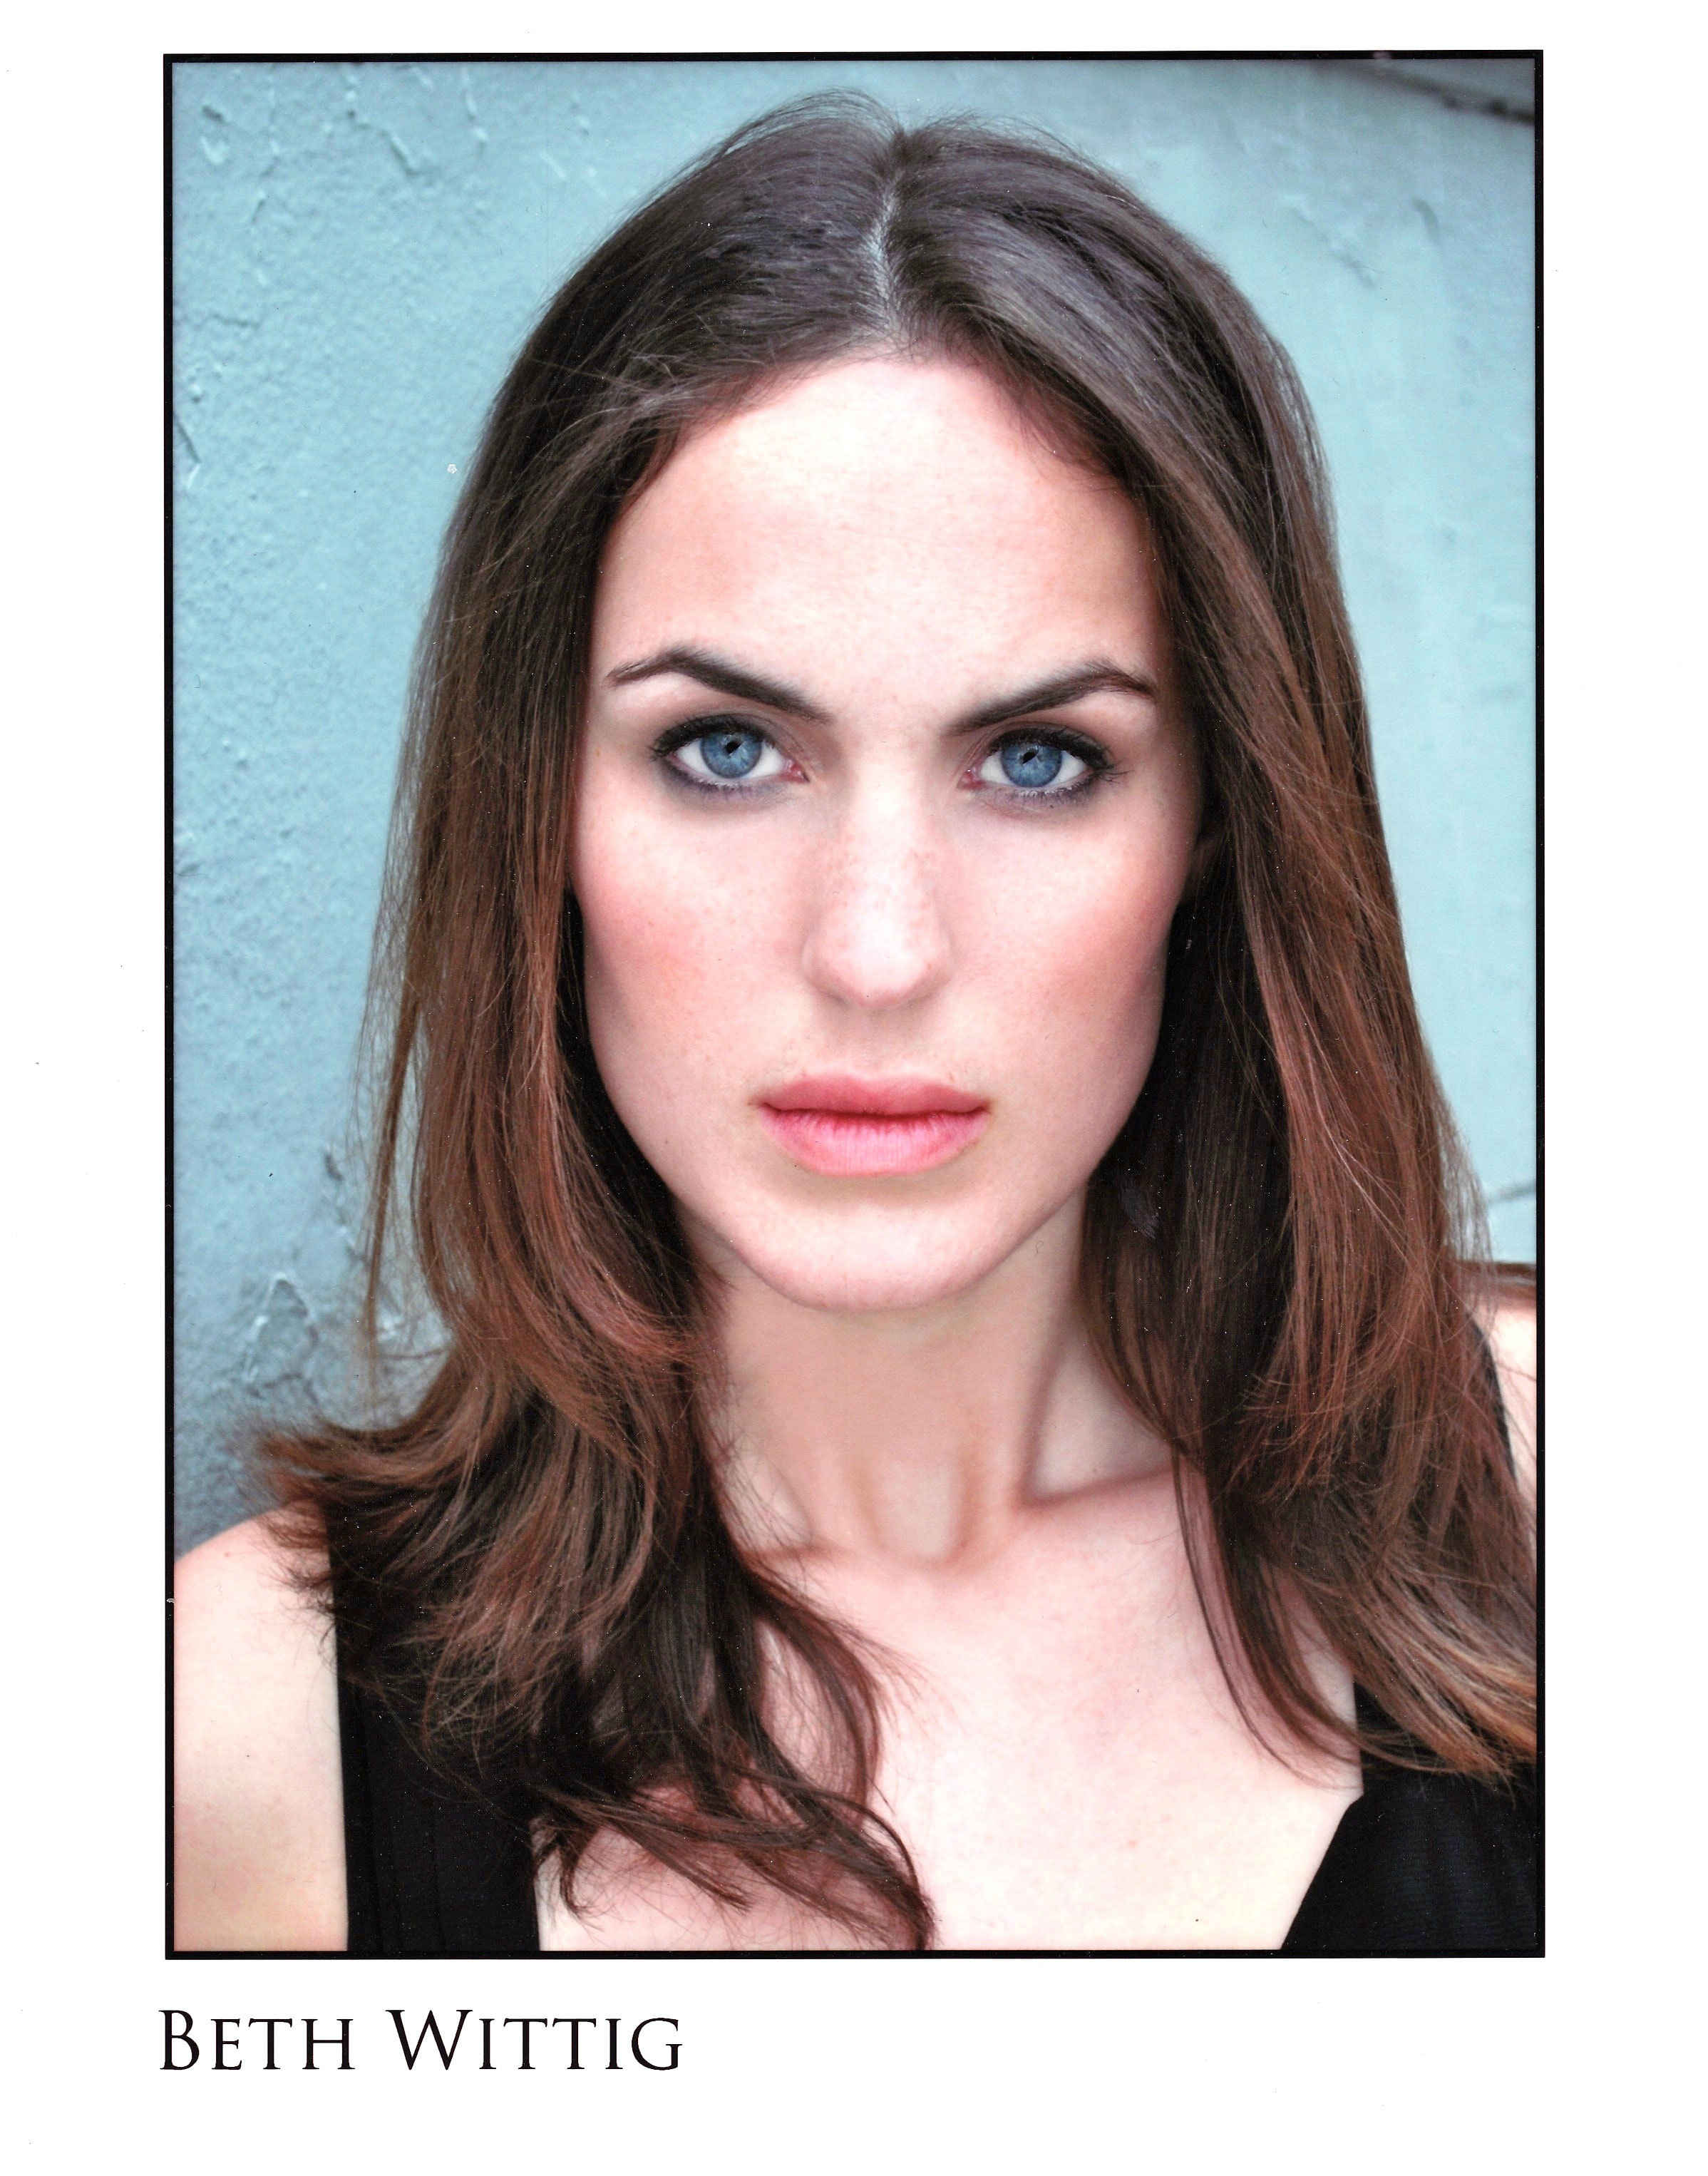 Beth Wittig makes her debut as the Hogan family daughter Josie. (credit: Courtesy of Margie Romero)